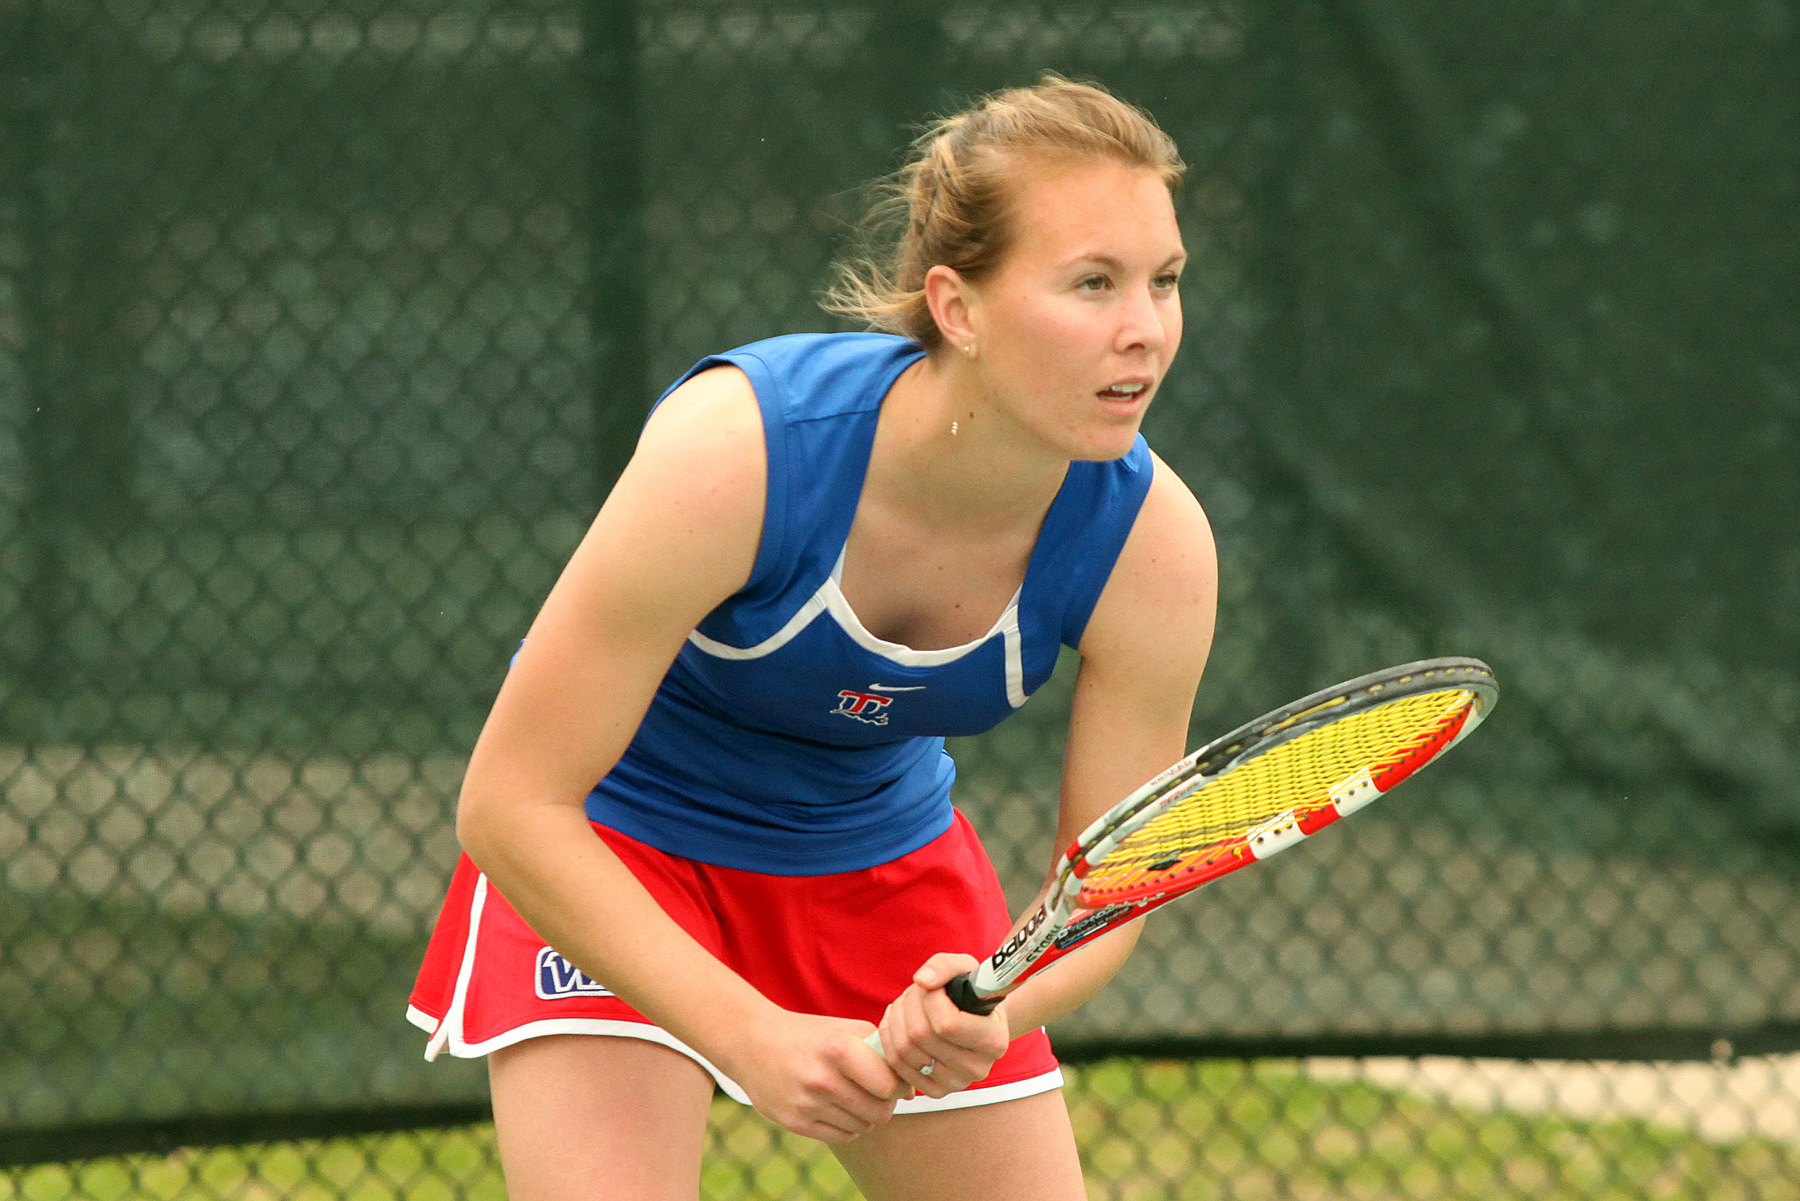 Freshman Alexandra Starkova netted wins in singles and doubles